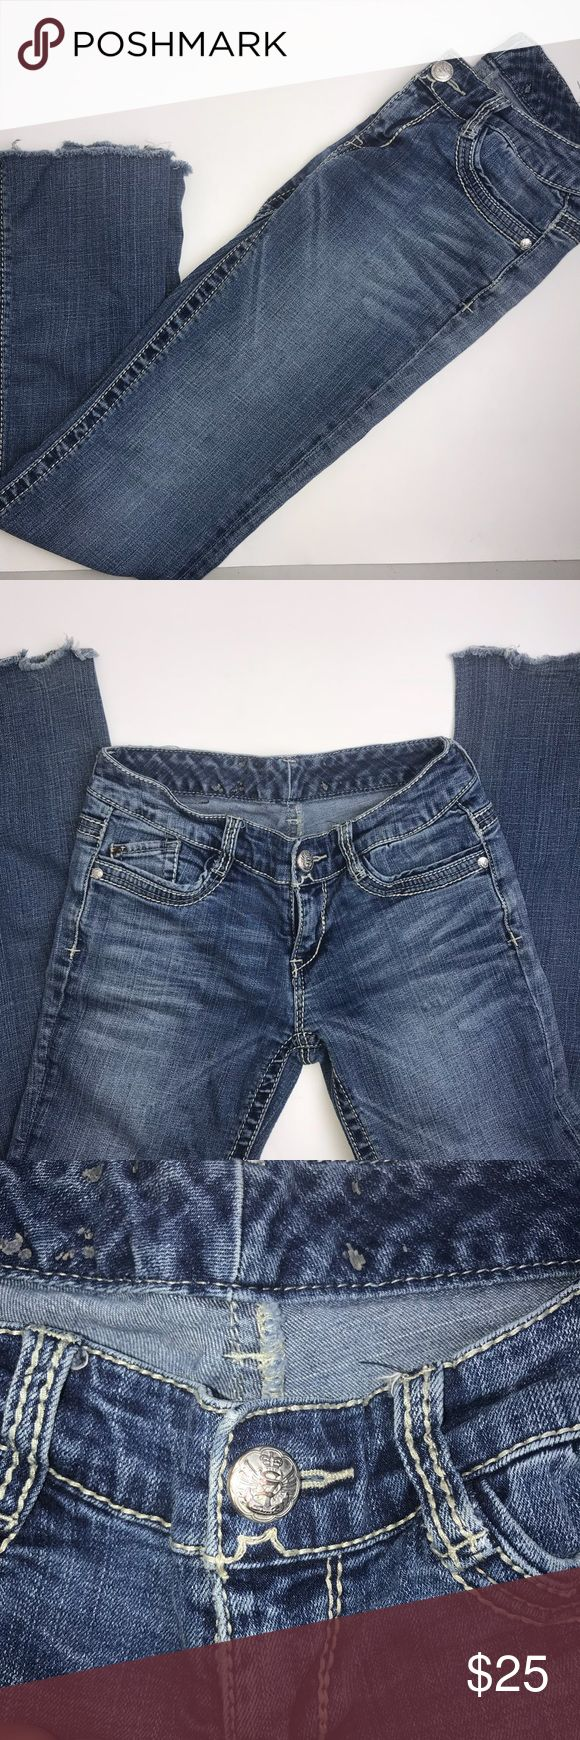 Seven7 Jeans size 25 Seven7 Jeans size 25  Waist 🔴25 Length 🔴36 Inseam 🔴28  Hips🔴29 Leg Opening 🔴8.5                                                                         Unfinished Ankle Opening. Light colored thick stitching and decorative back pockets with rhinestones. Pre-owned, No Pilling, Stains or Rips Seven7 Jeans Flare & Wide Leg